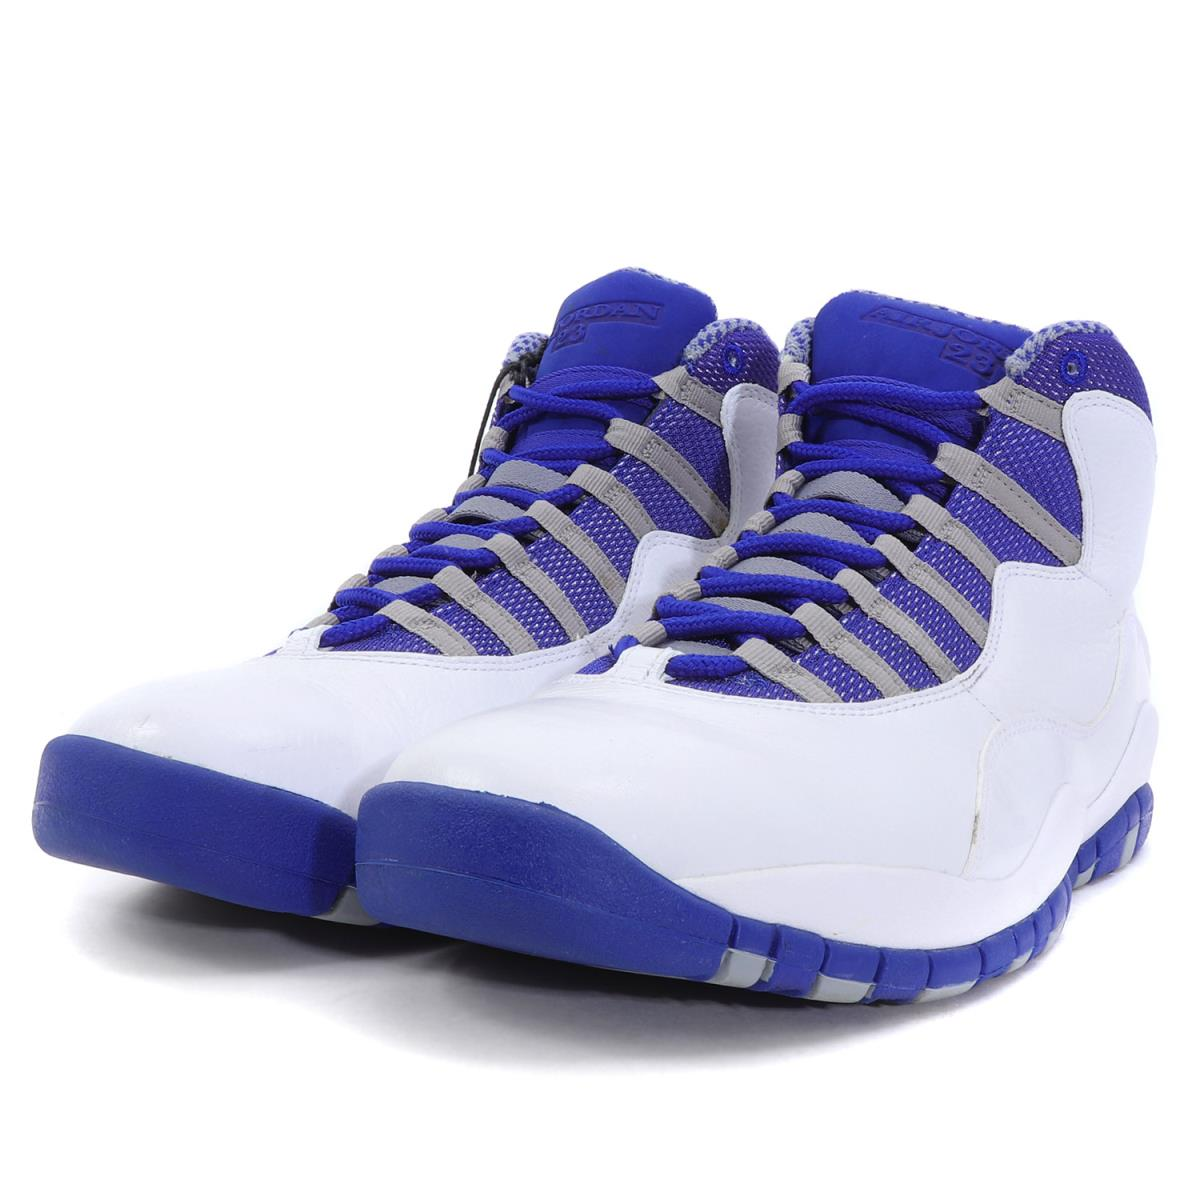 premium selection ce142 f0b6c NIKE (Nike) AIR JORDAN 10 RETRO TXT (487,214-107) white X old royal